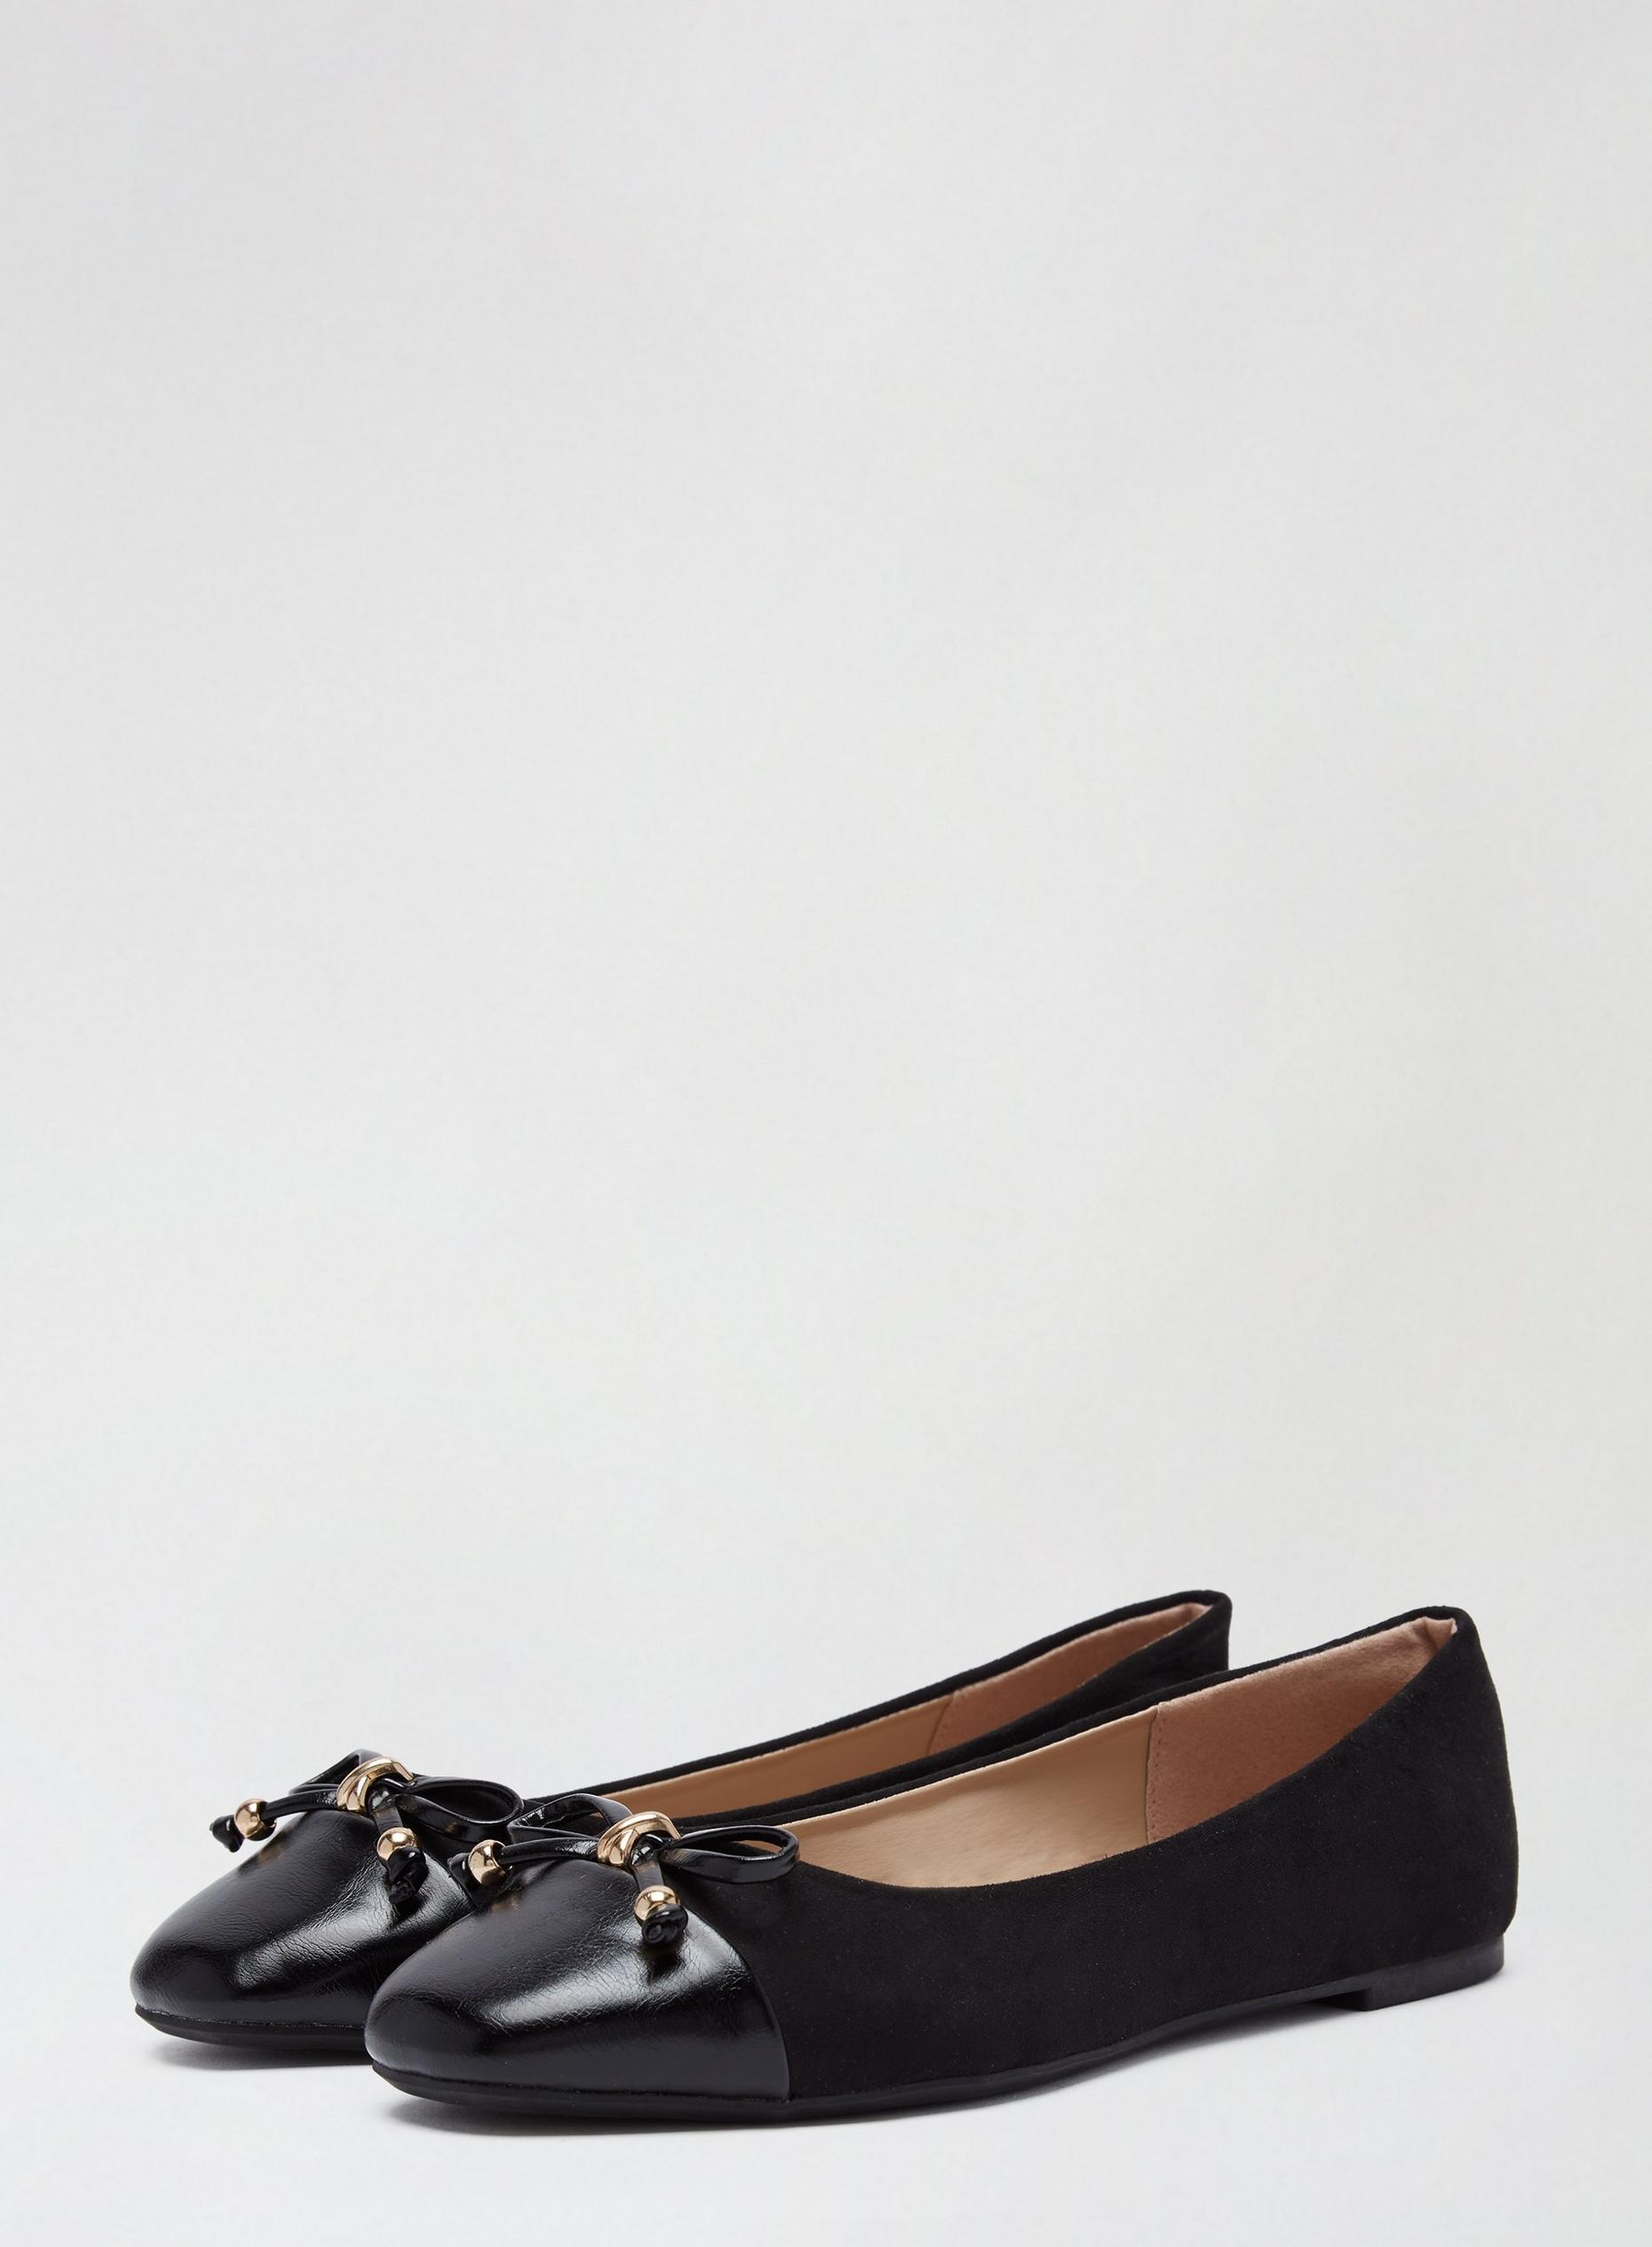 Black Peanut Ballerina Pumps